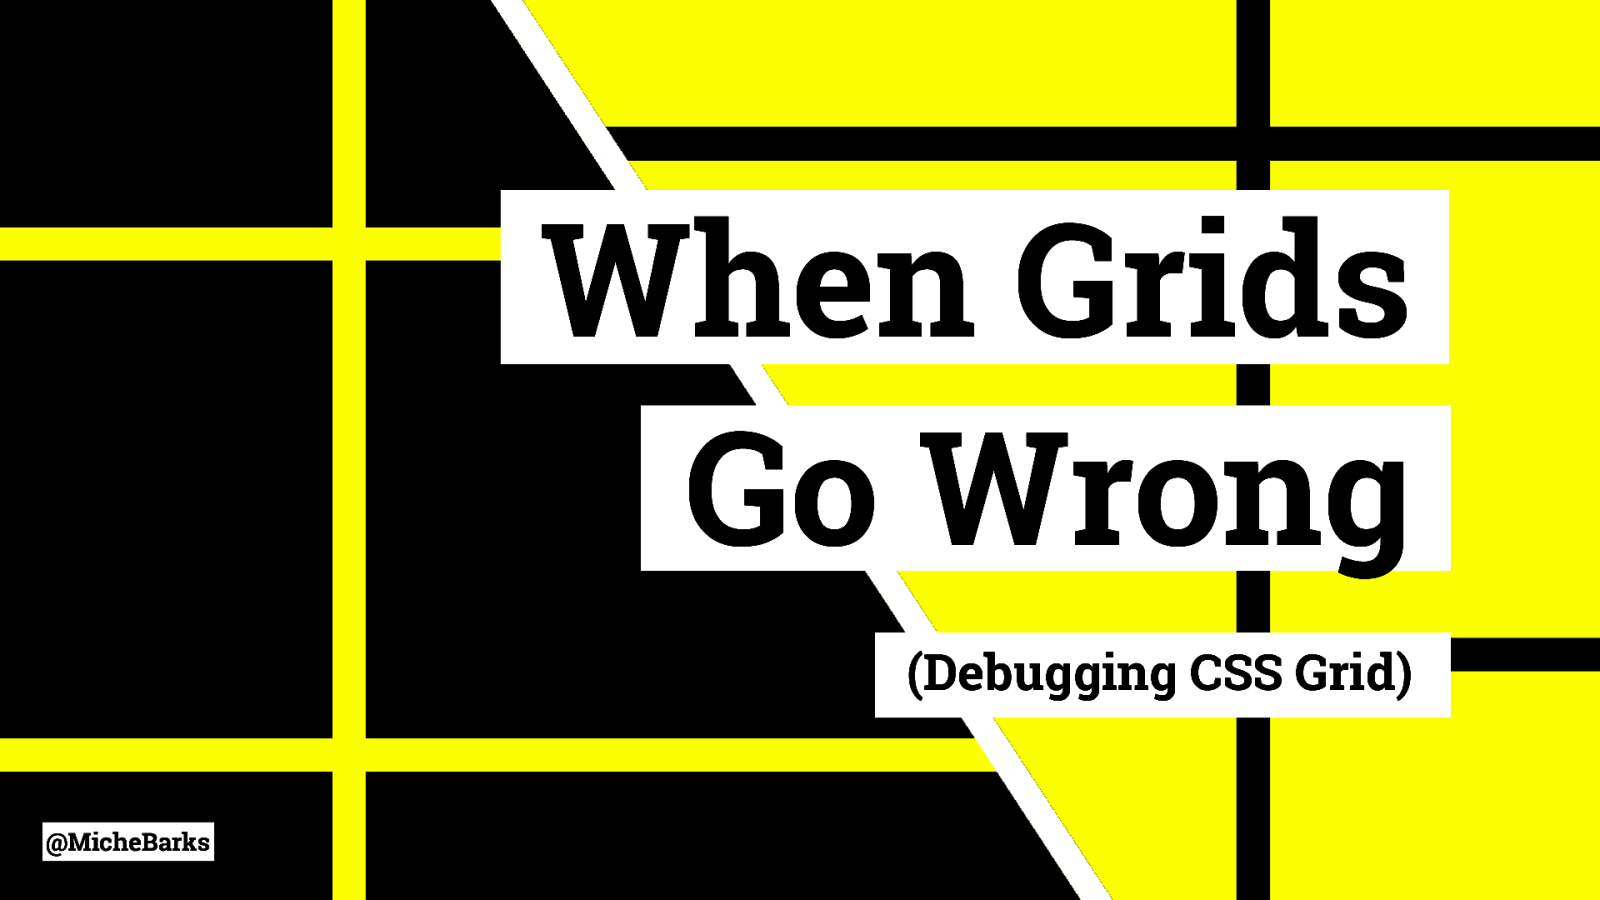 When Grids Go Wrong: Debugging CSS Grid